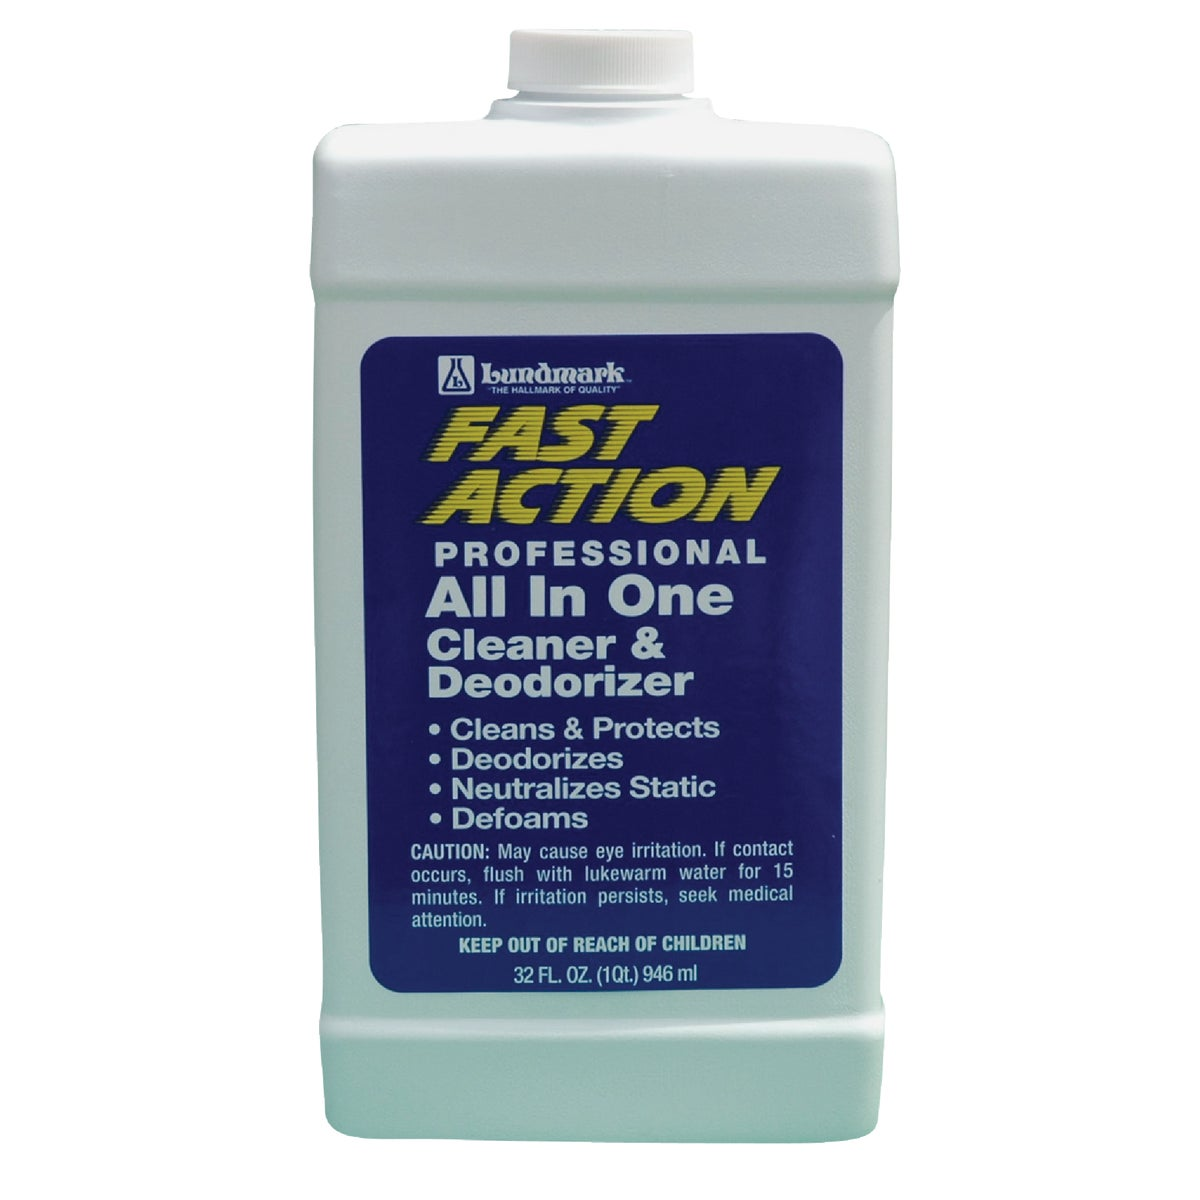 32OZ ALL-IN-ONE CLEANER